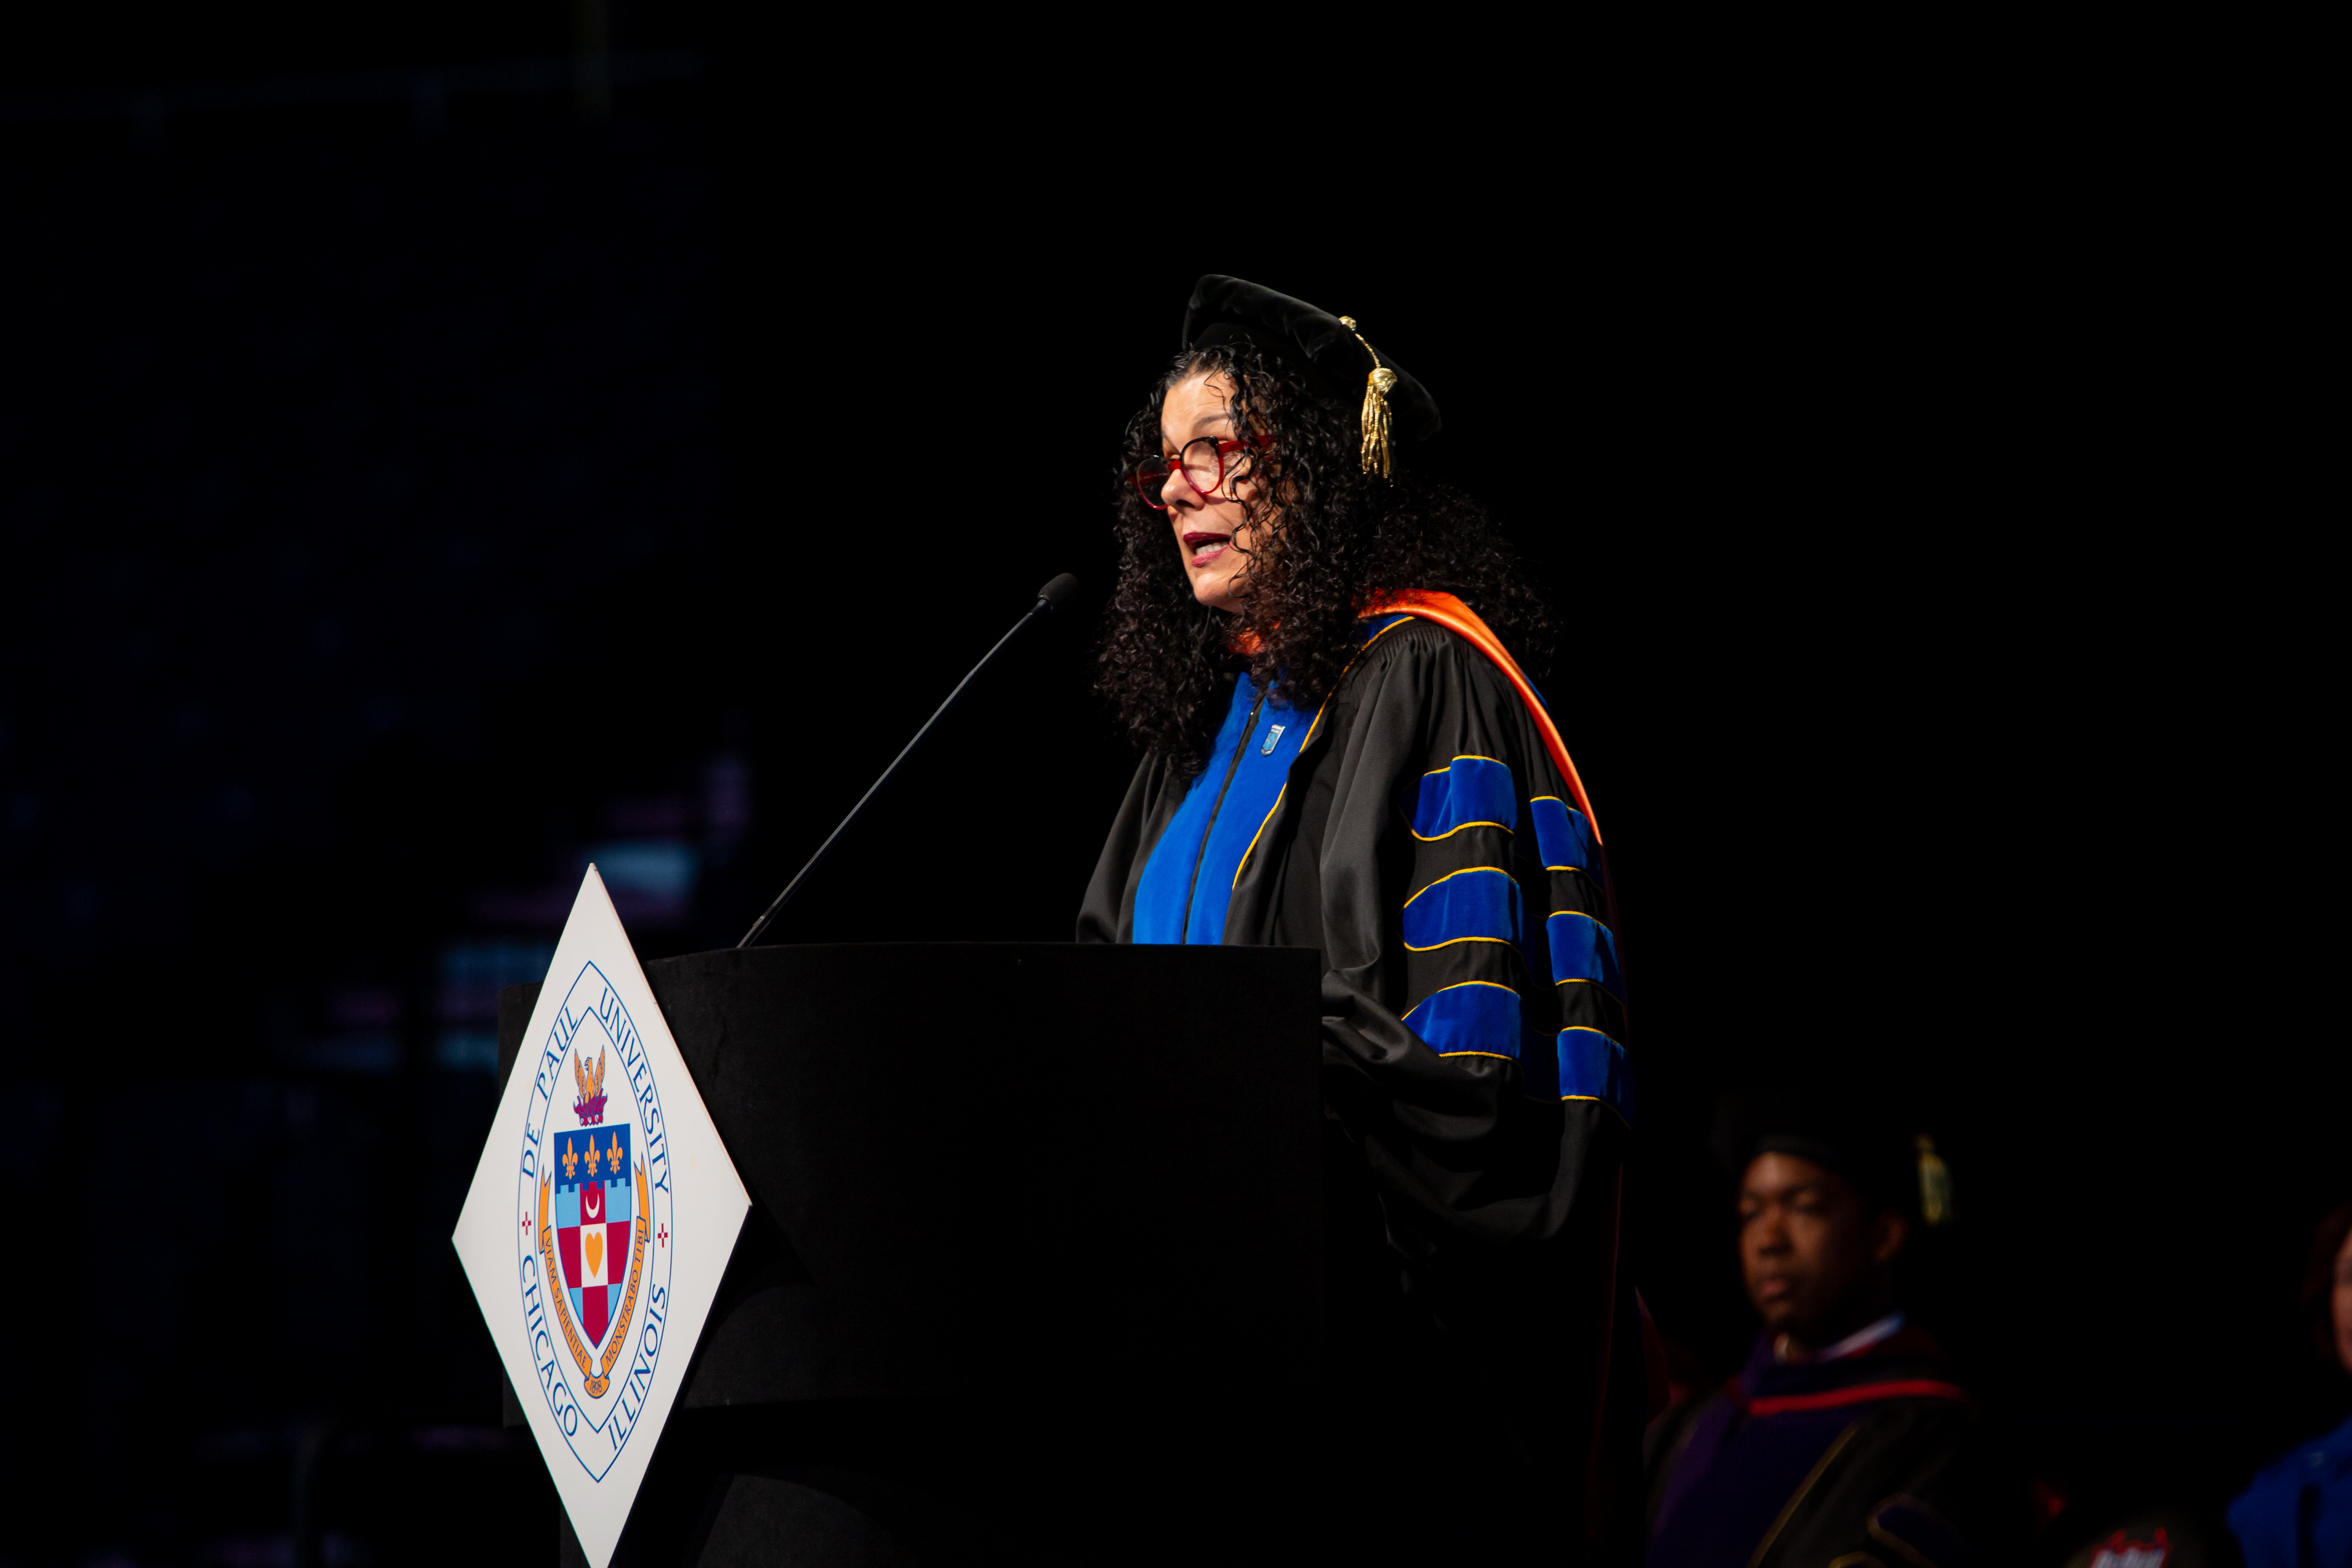 Salma Ghanem, interim provost, introduced each of DePaul's 10 deans and encouraged students from their respective schools to cheer the loudest for their dean. (DePaul University/Randall Spriggs)